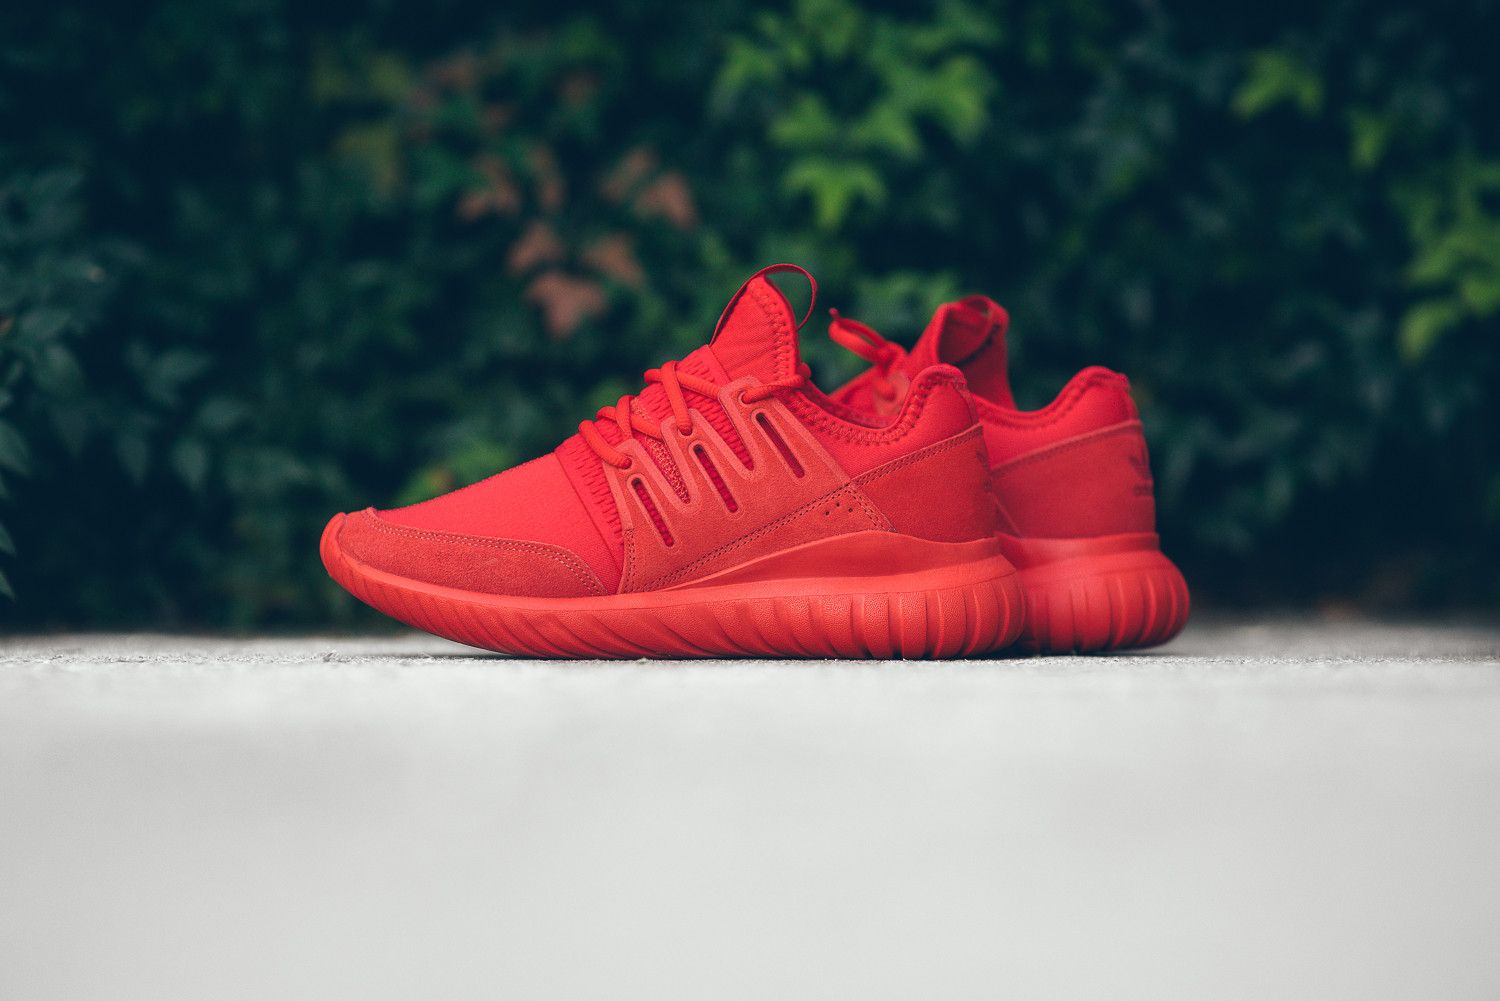 adidas Originals Tubular Radial Trainers In Red S80116 Red